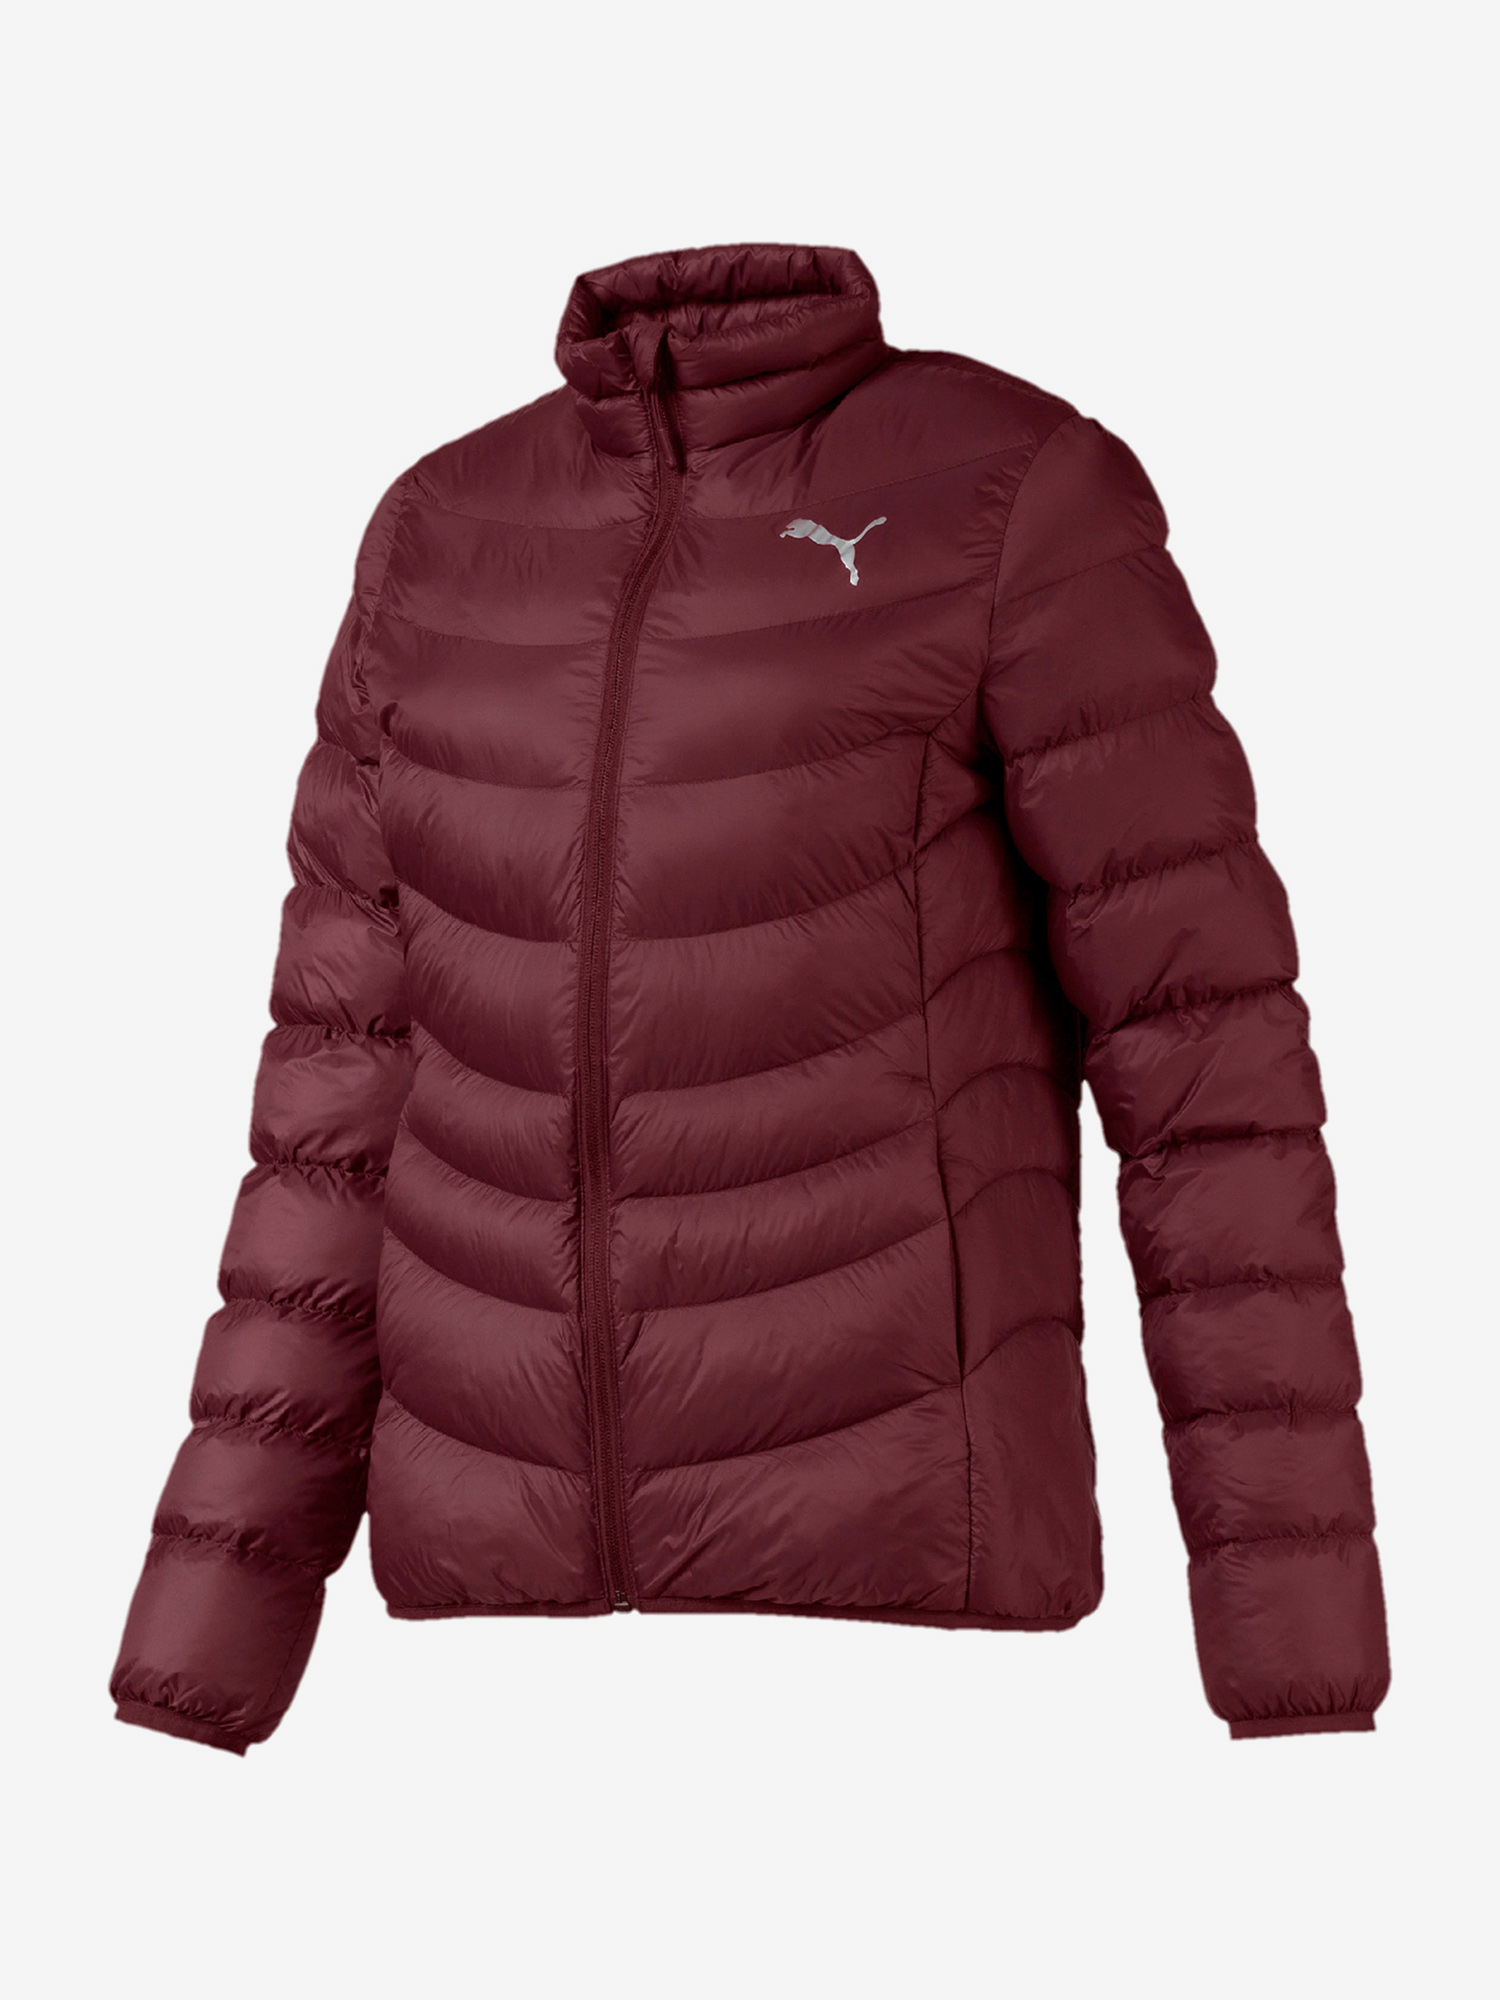 Bunda Puma Ultralight Warmcell Jacket Barevná